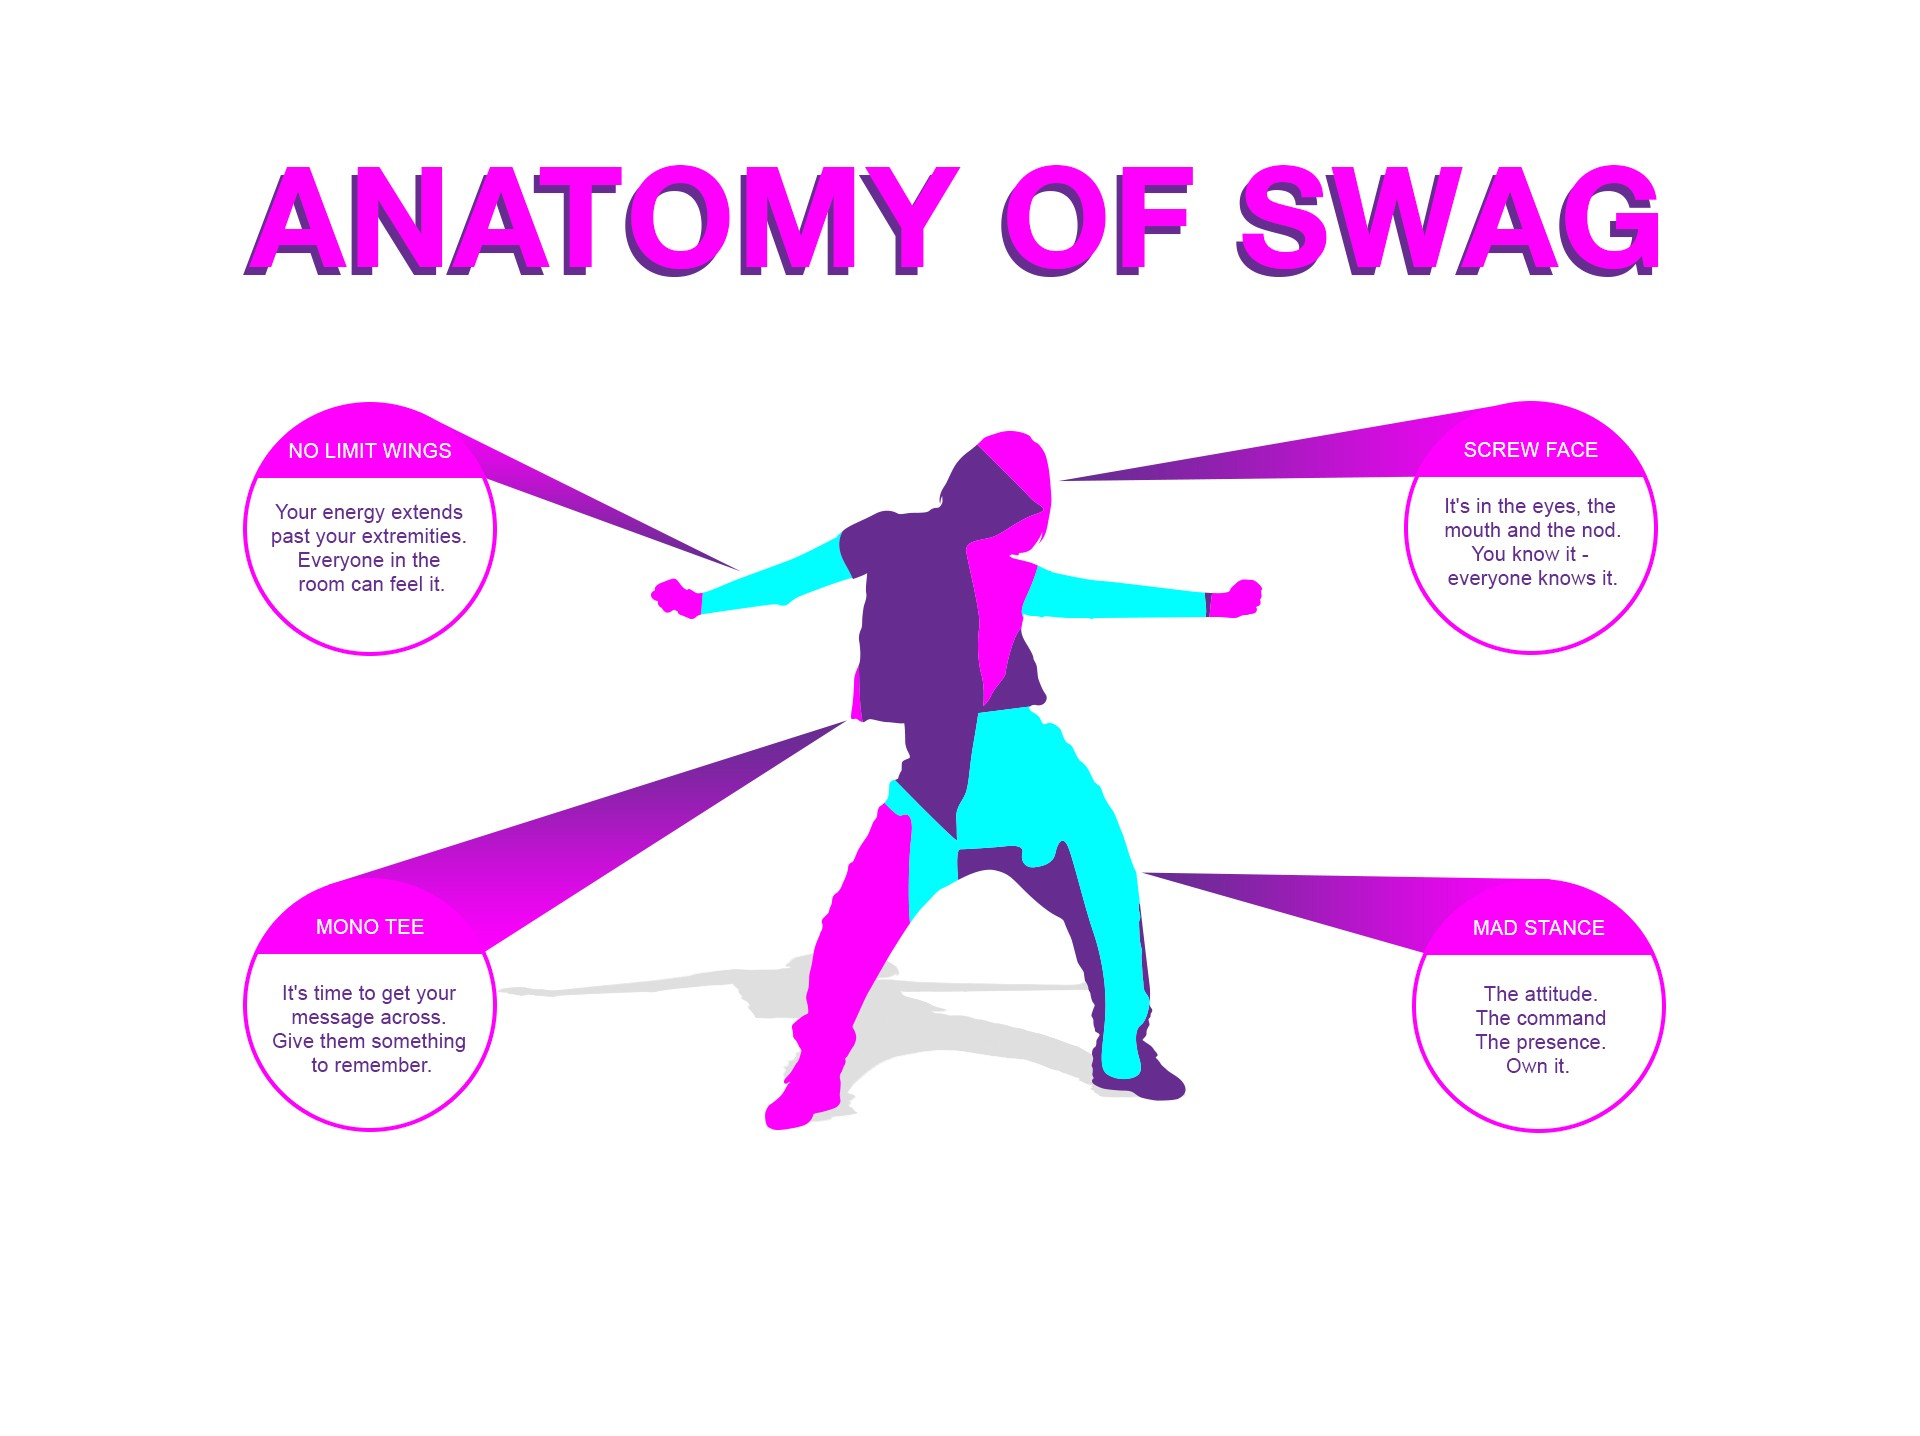 Anatomy of Swag – The Monosyrup Blog